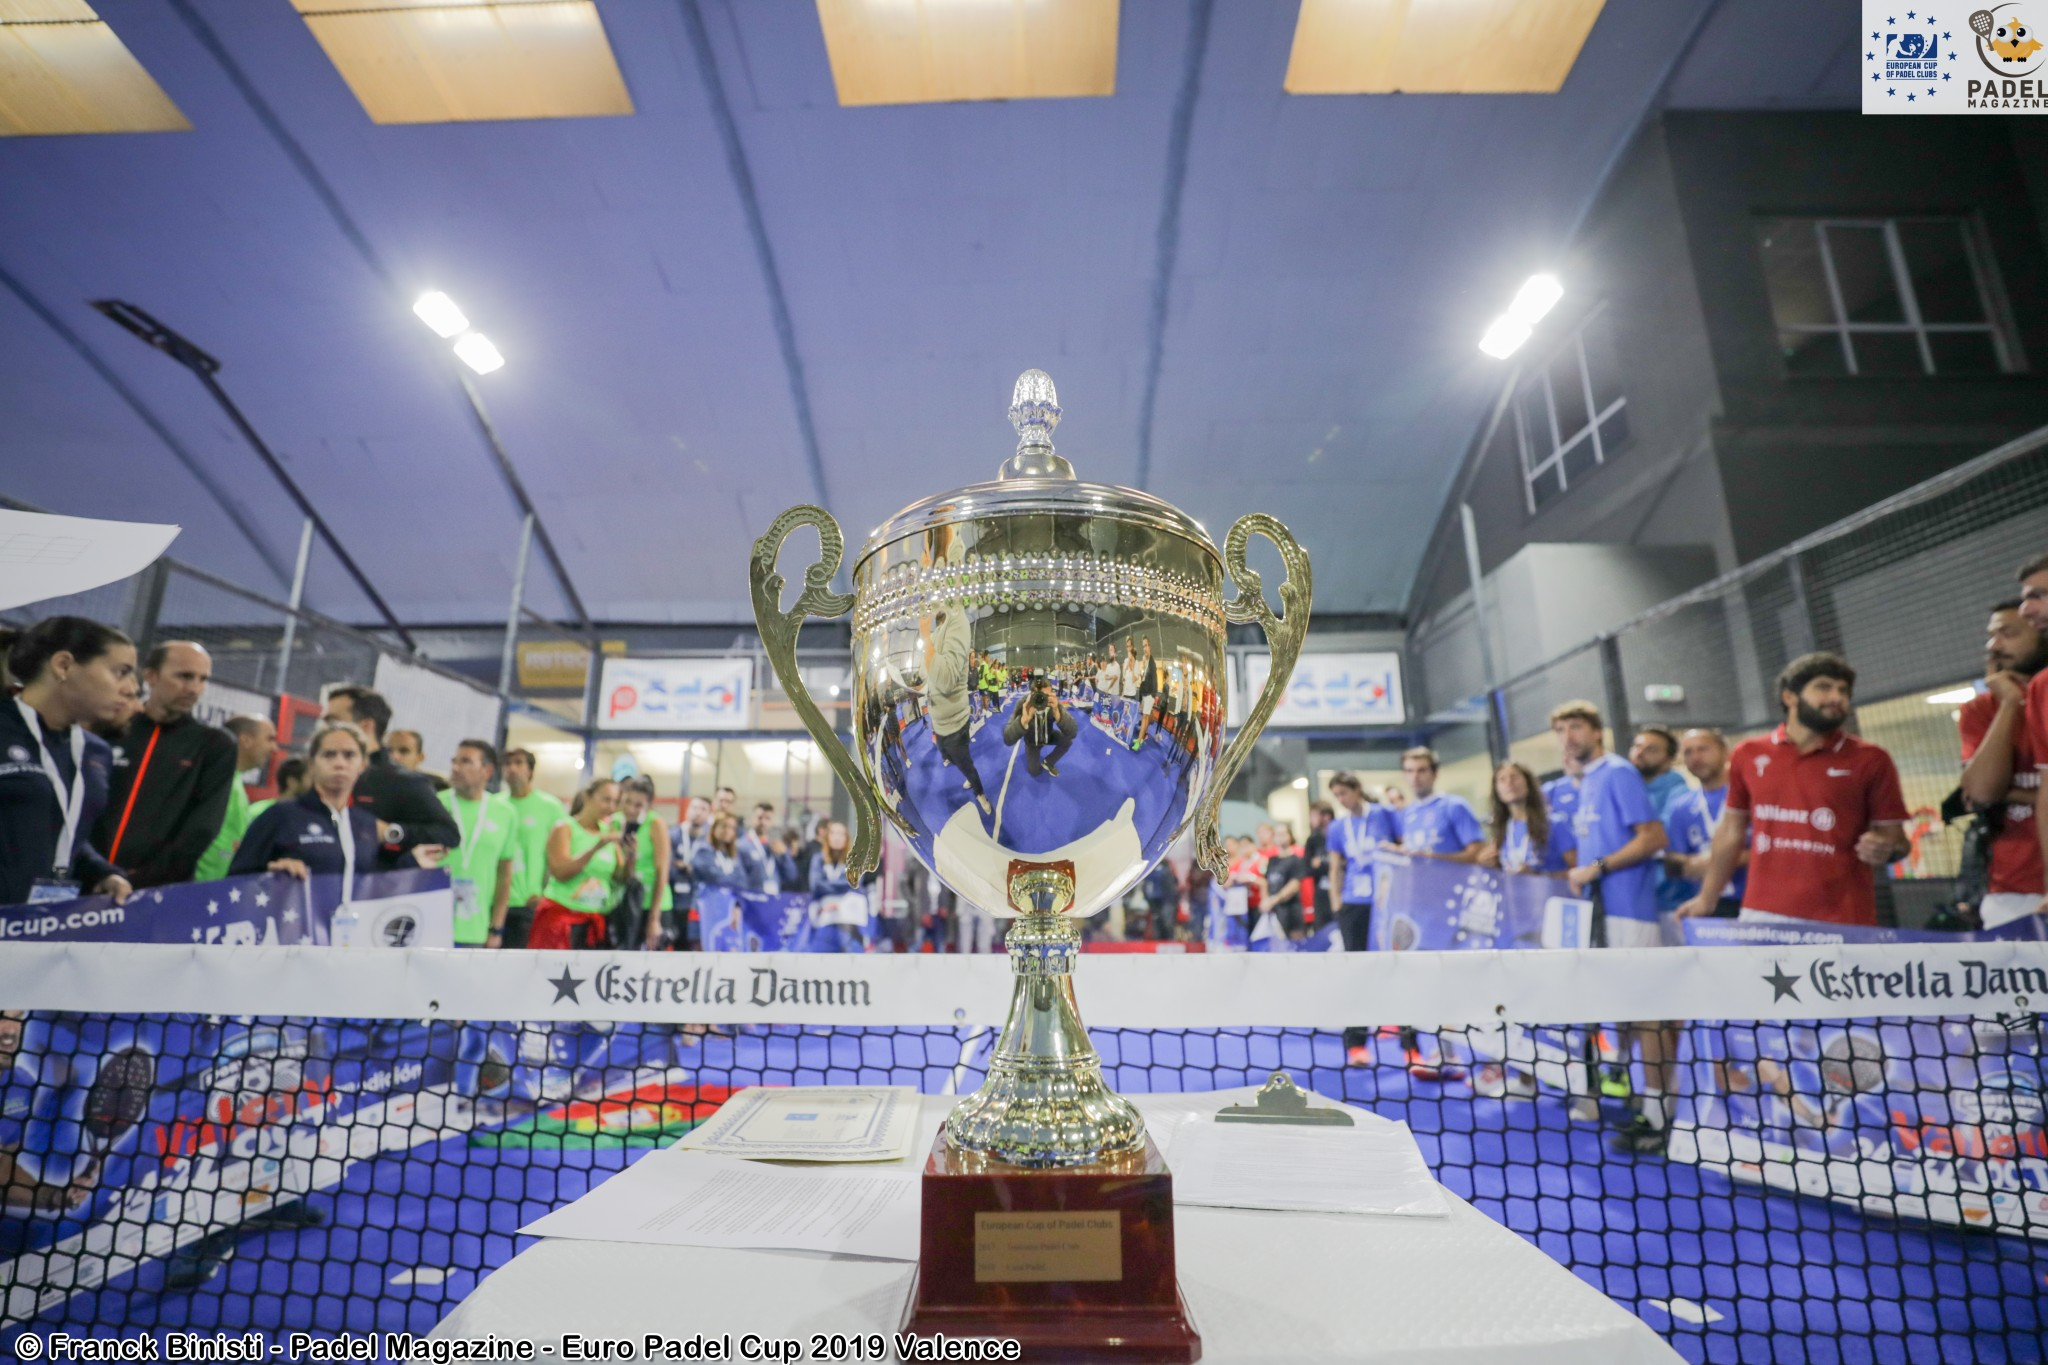 coupe europe padel